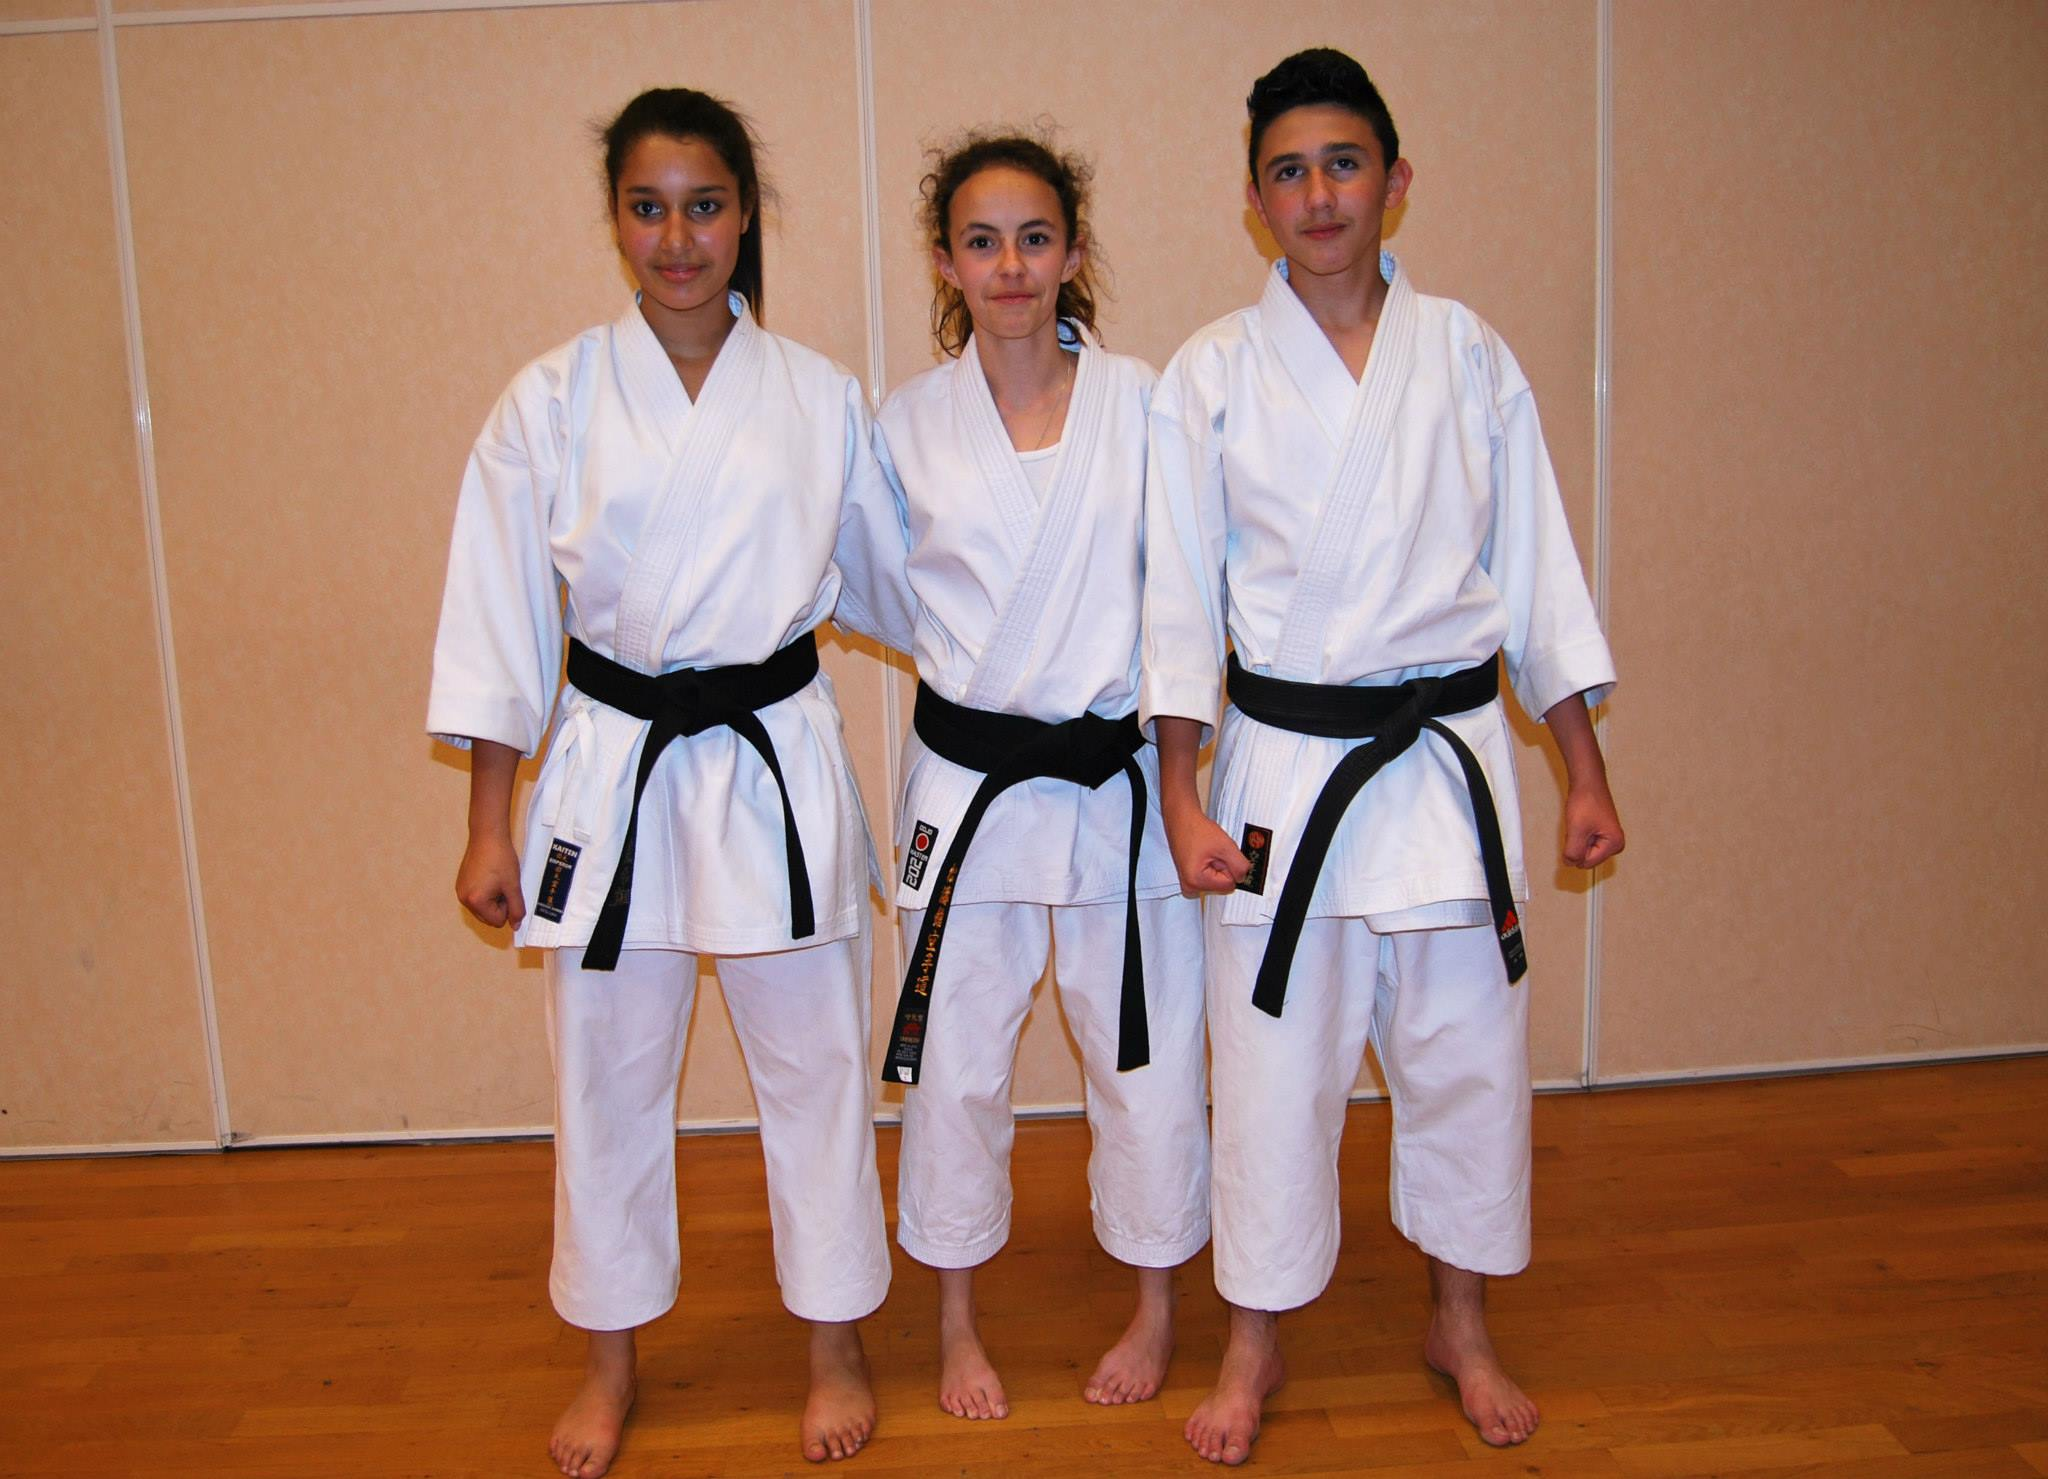 formation_karate_frejus.jpg